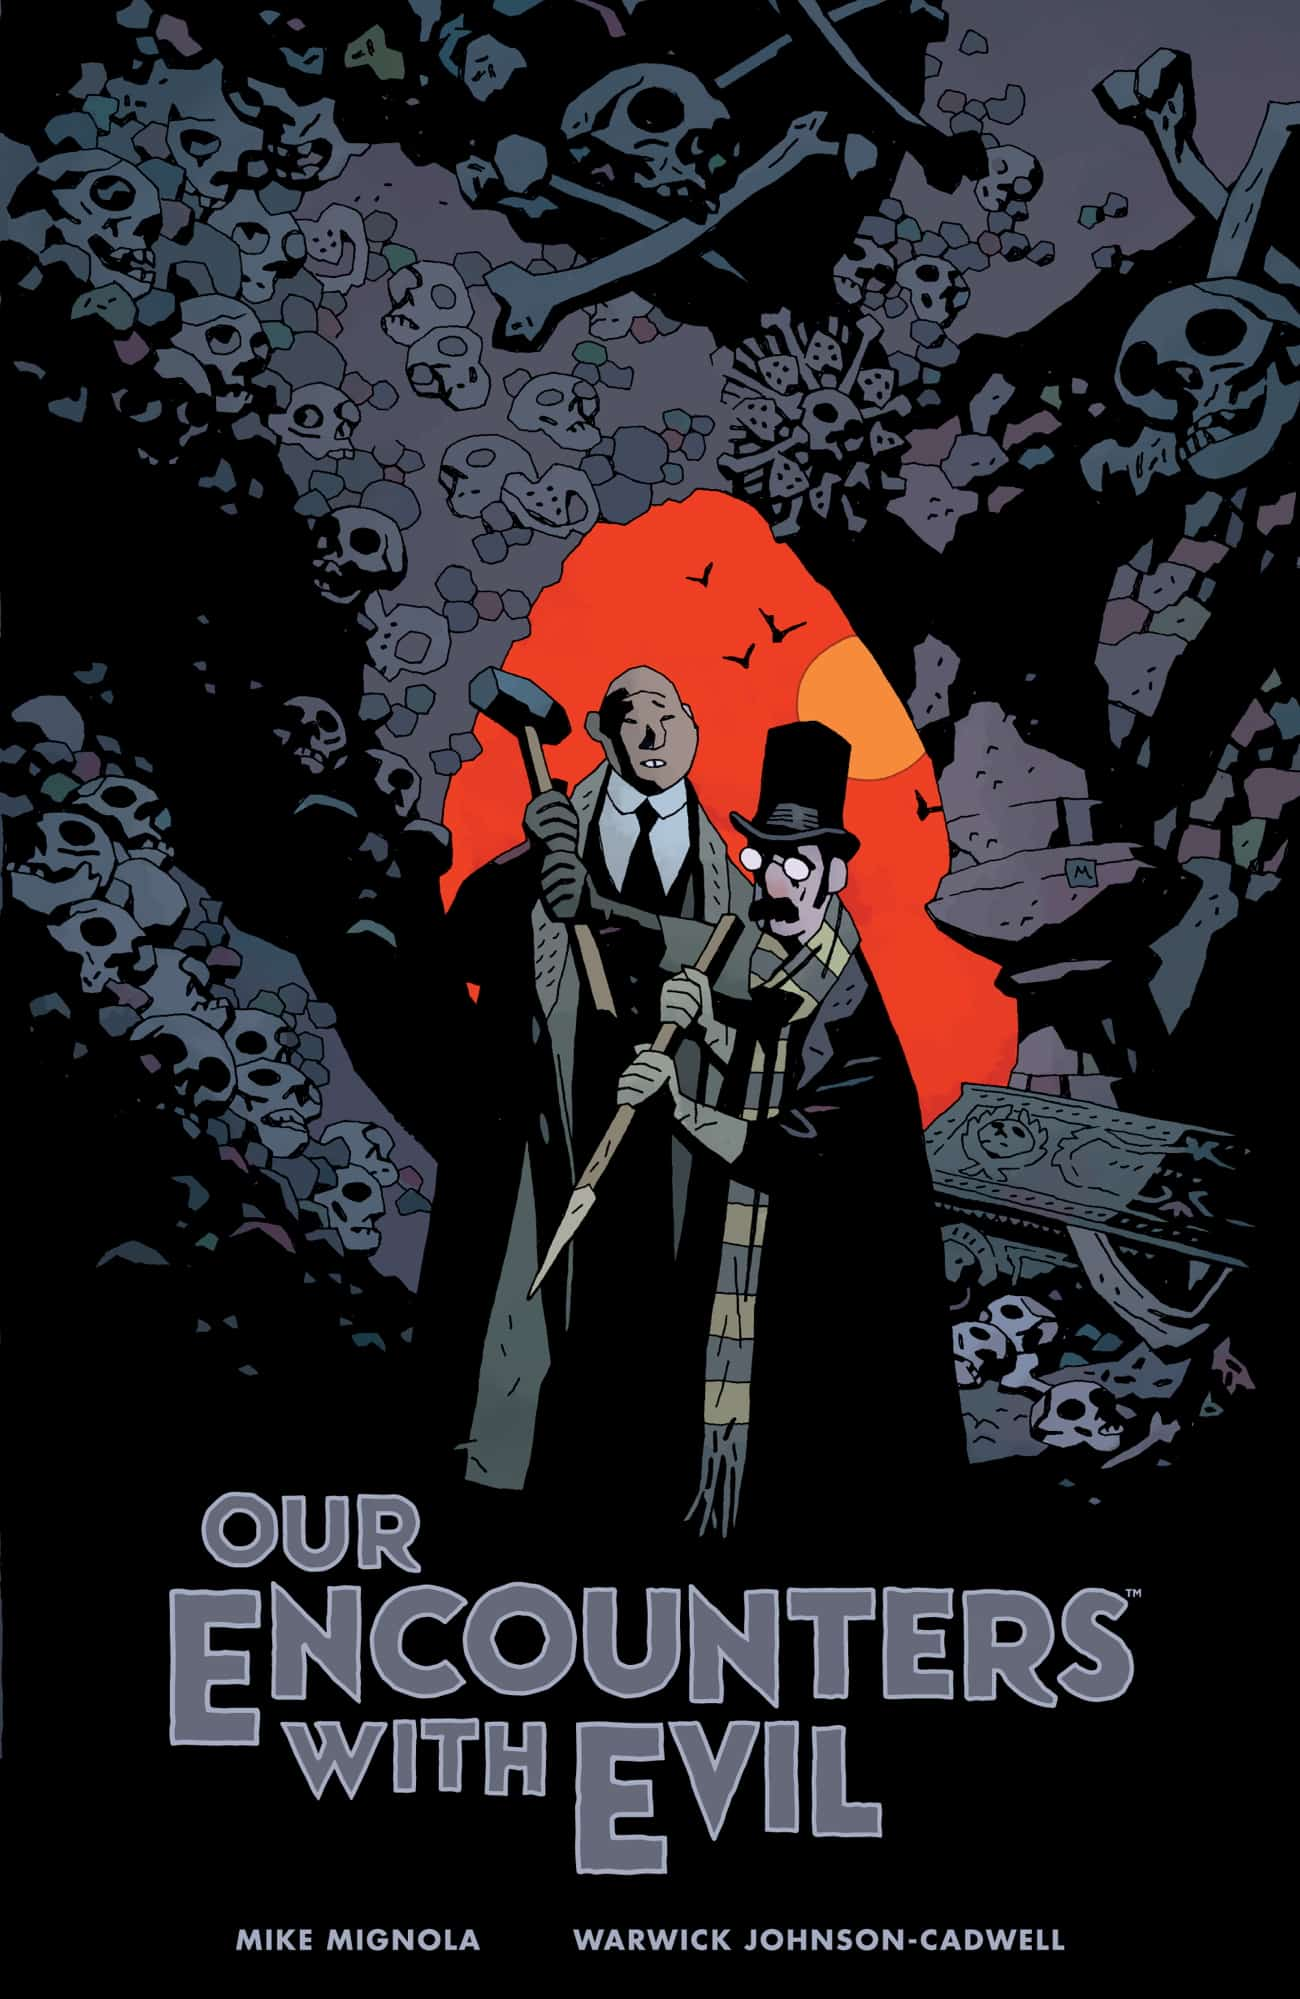 OEWE HC CVR 4X6 - Exclusive Preview of OUR ENCOUNTERS WITH EVIL by Mike Mignola & Warwick Johnson-Cadwell